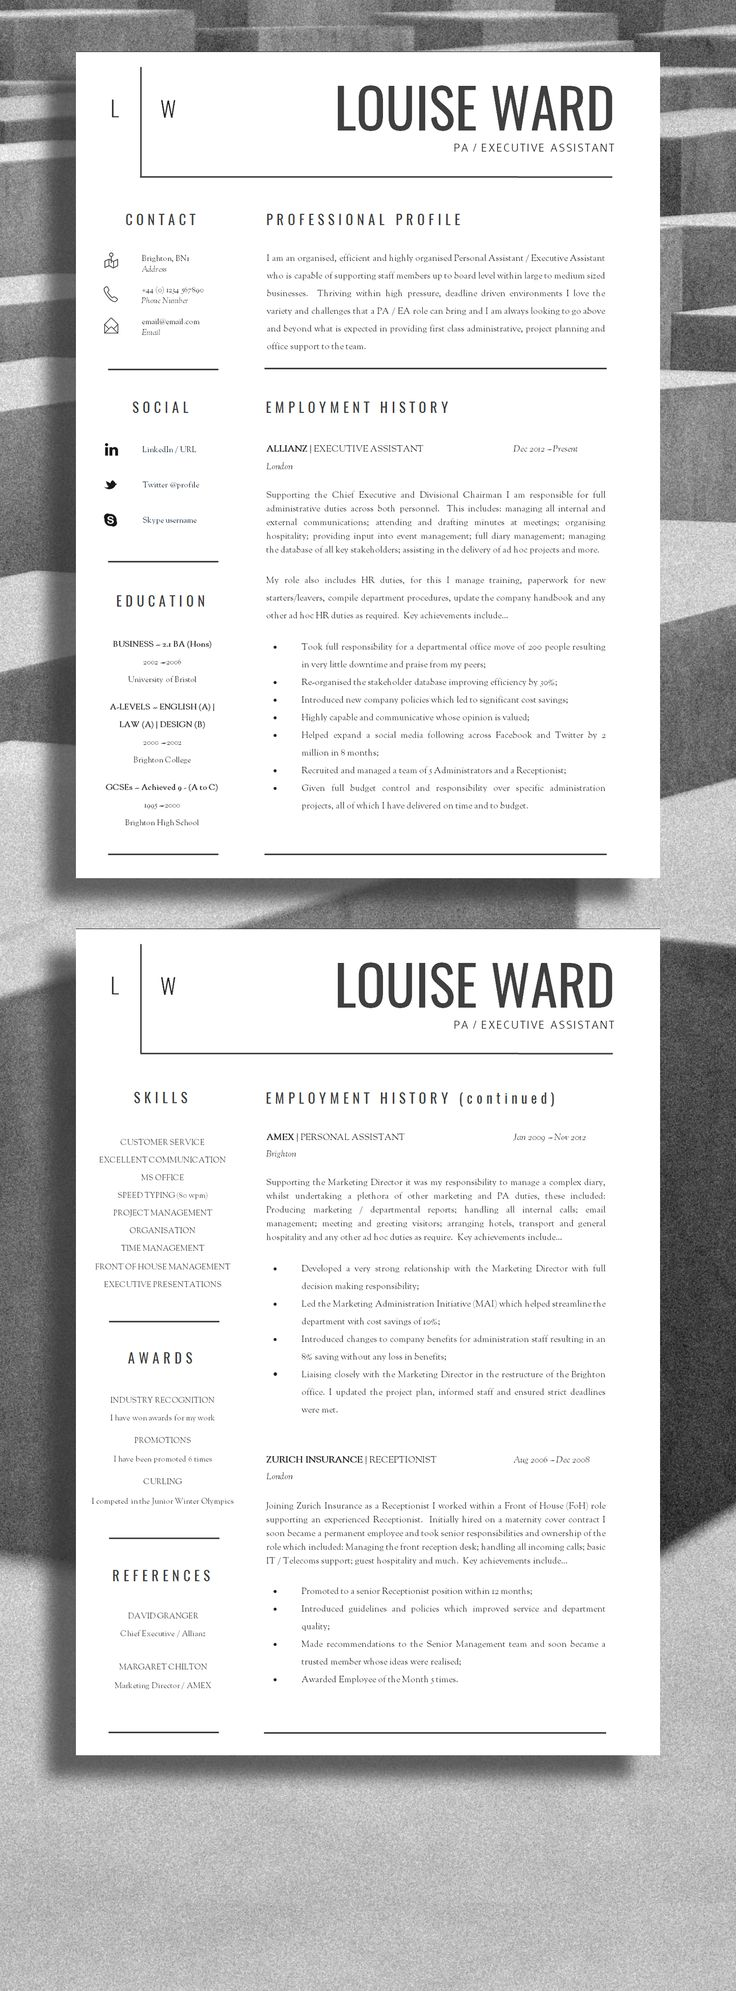 best ideas about professional resume template professional resume design professional cv design be professional and get more interviews career